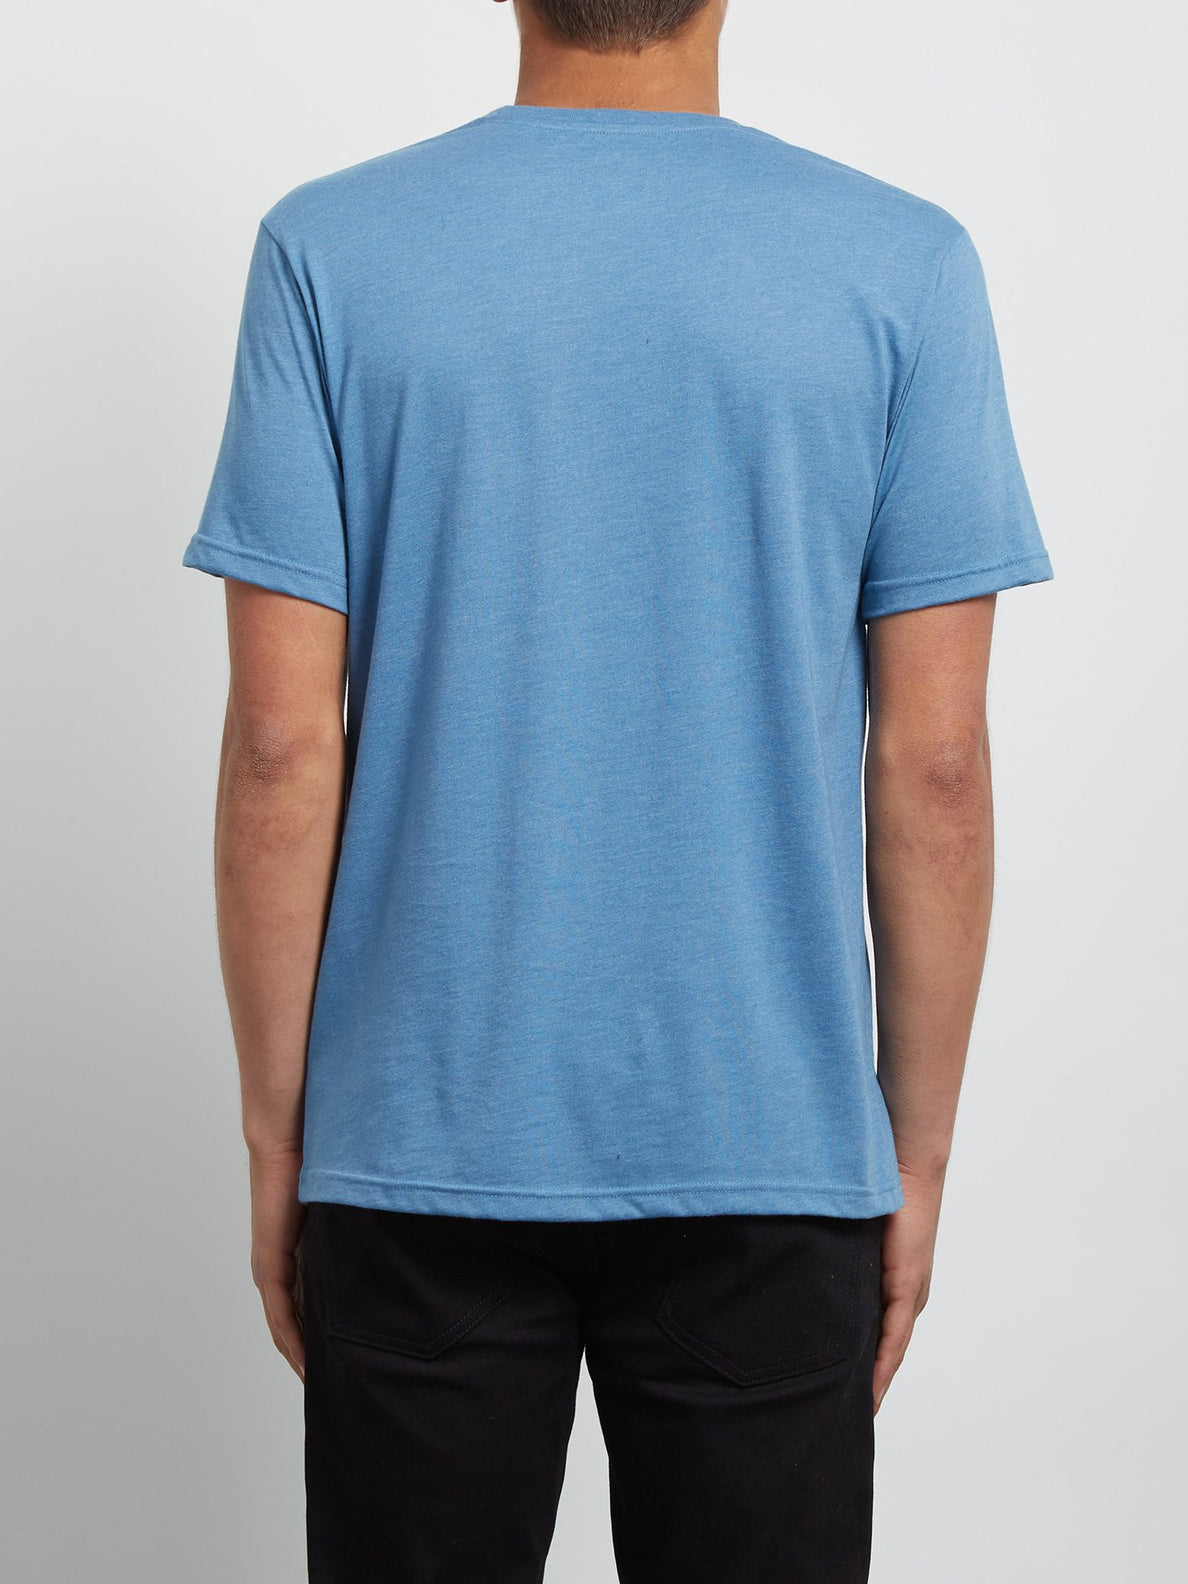 Tropical D Short Sleeve Tee - Wrecked Indigo